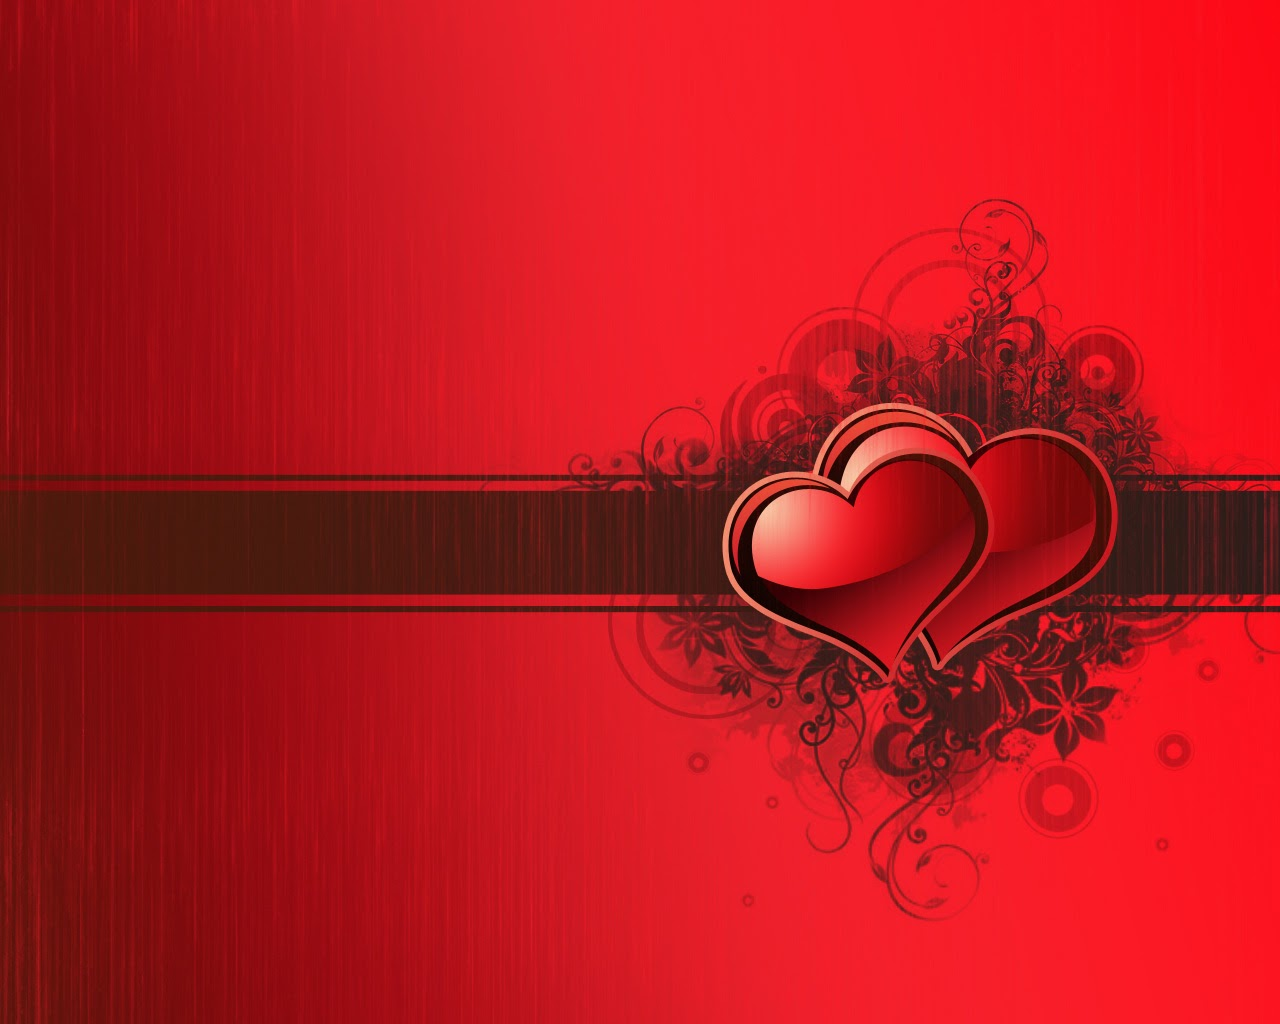 happy valentines day 2012 hd wallpapers happy valentines day 2012 1280x1024